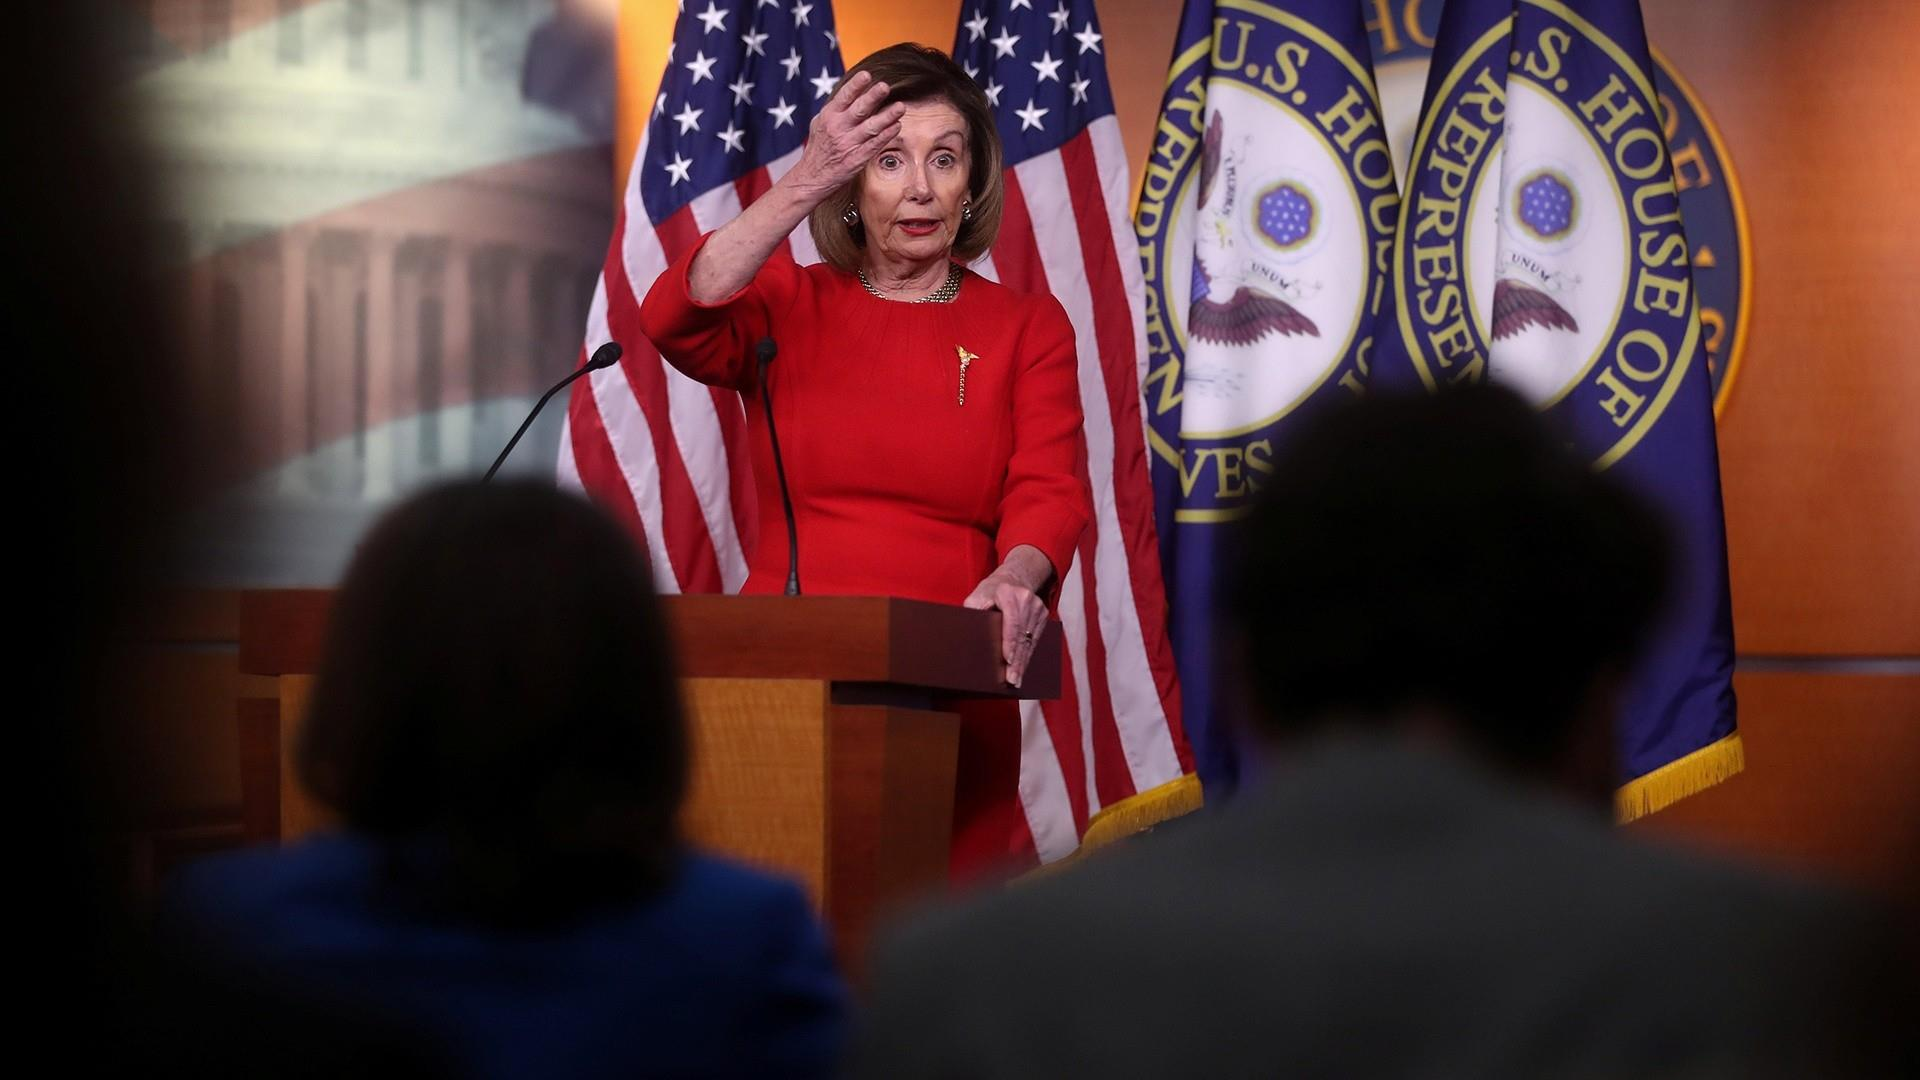 Pelosi says Trump carried out strike on Iranian commander without authorization and she wants details